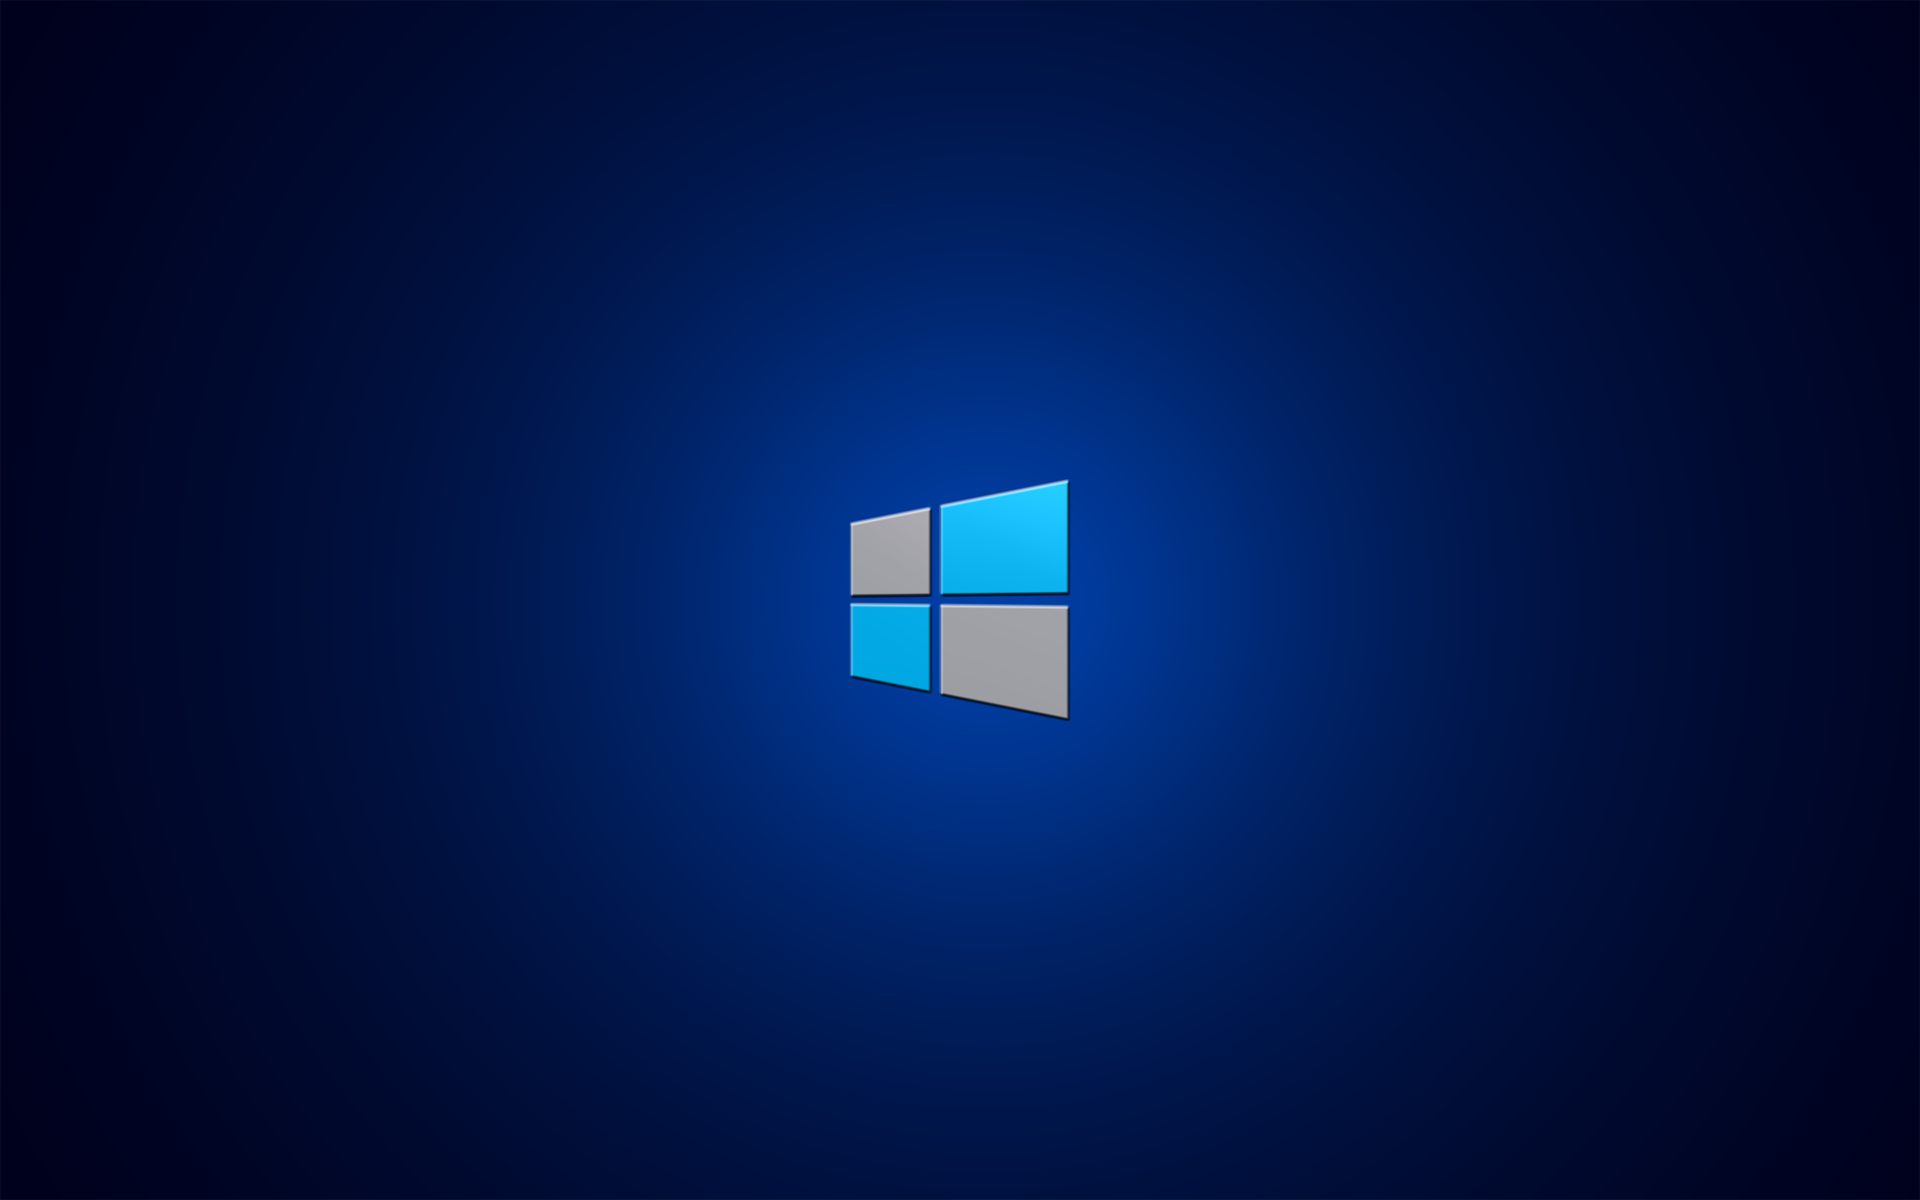 Video Wallpaper Windows 8